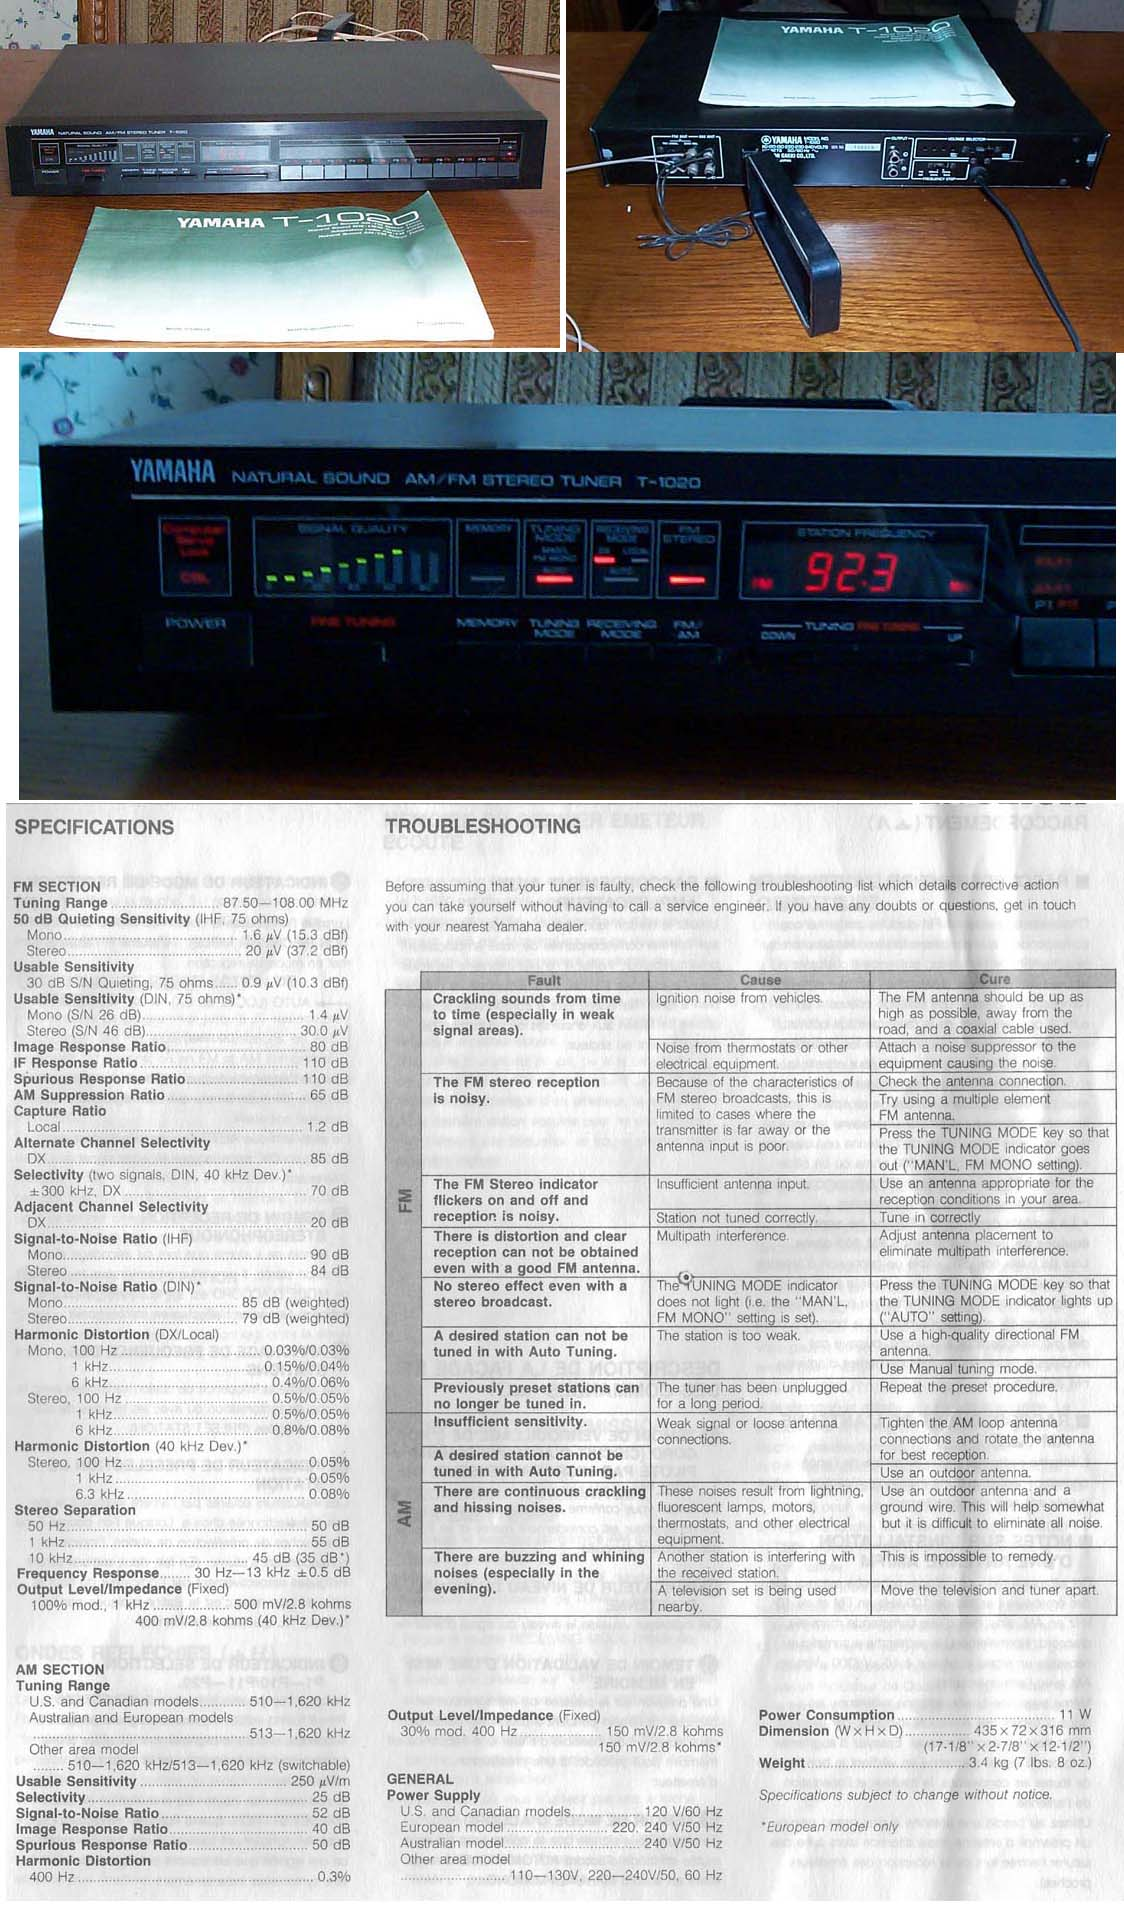 Tuner Information Center Yamaha Tuners Diagram D Audio For 410 Rooms Using A Second Stereo Receiver The Very Common T 1020 Is Black Digital That Was In Yamahas Line Behind Superb 85 It Has Electronic Equivalent Of 4 Gangs